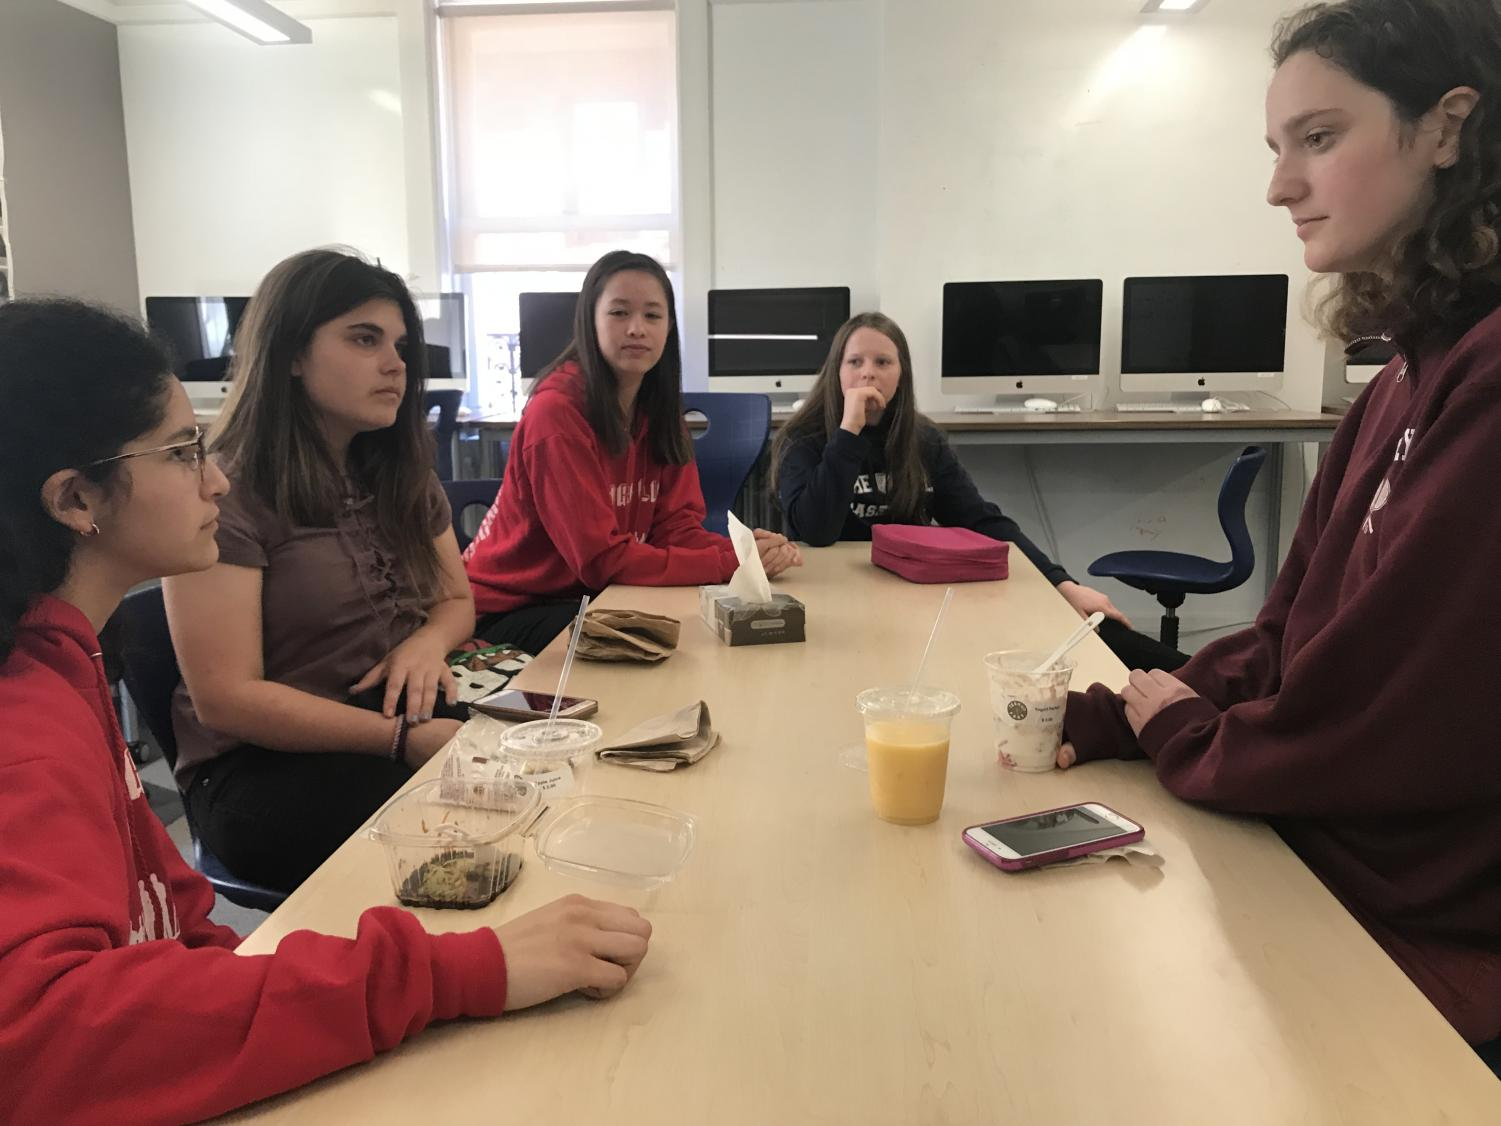 The Philosophy Club meets for their weekly Monday discussion. The club is currently only freshmen but is open to accepting students from any grade level.